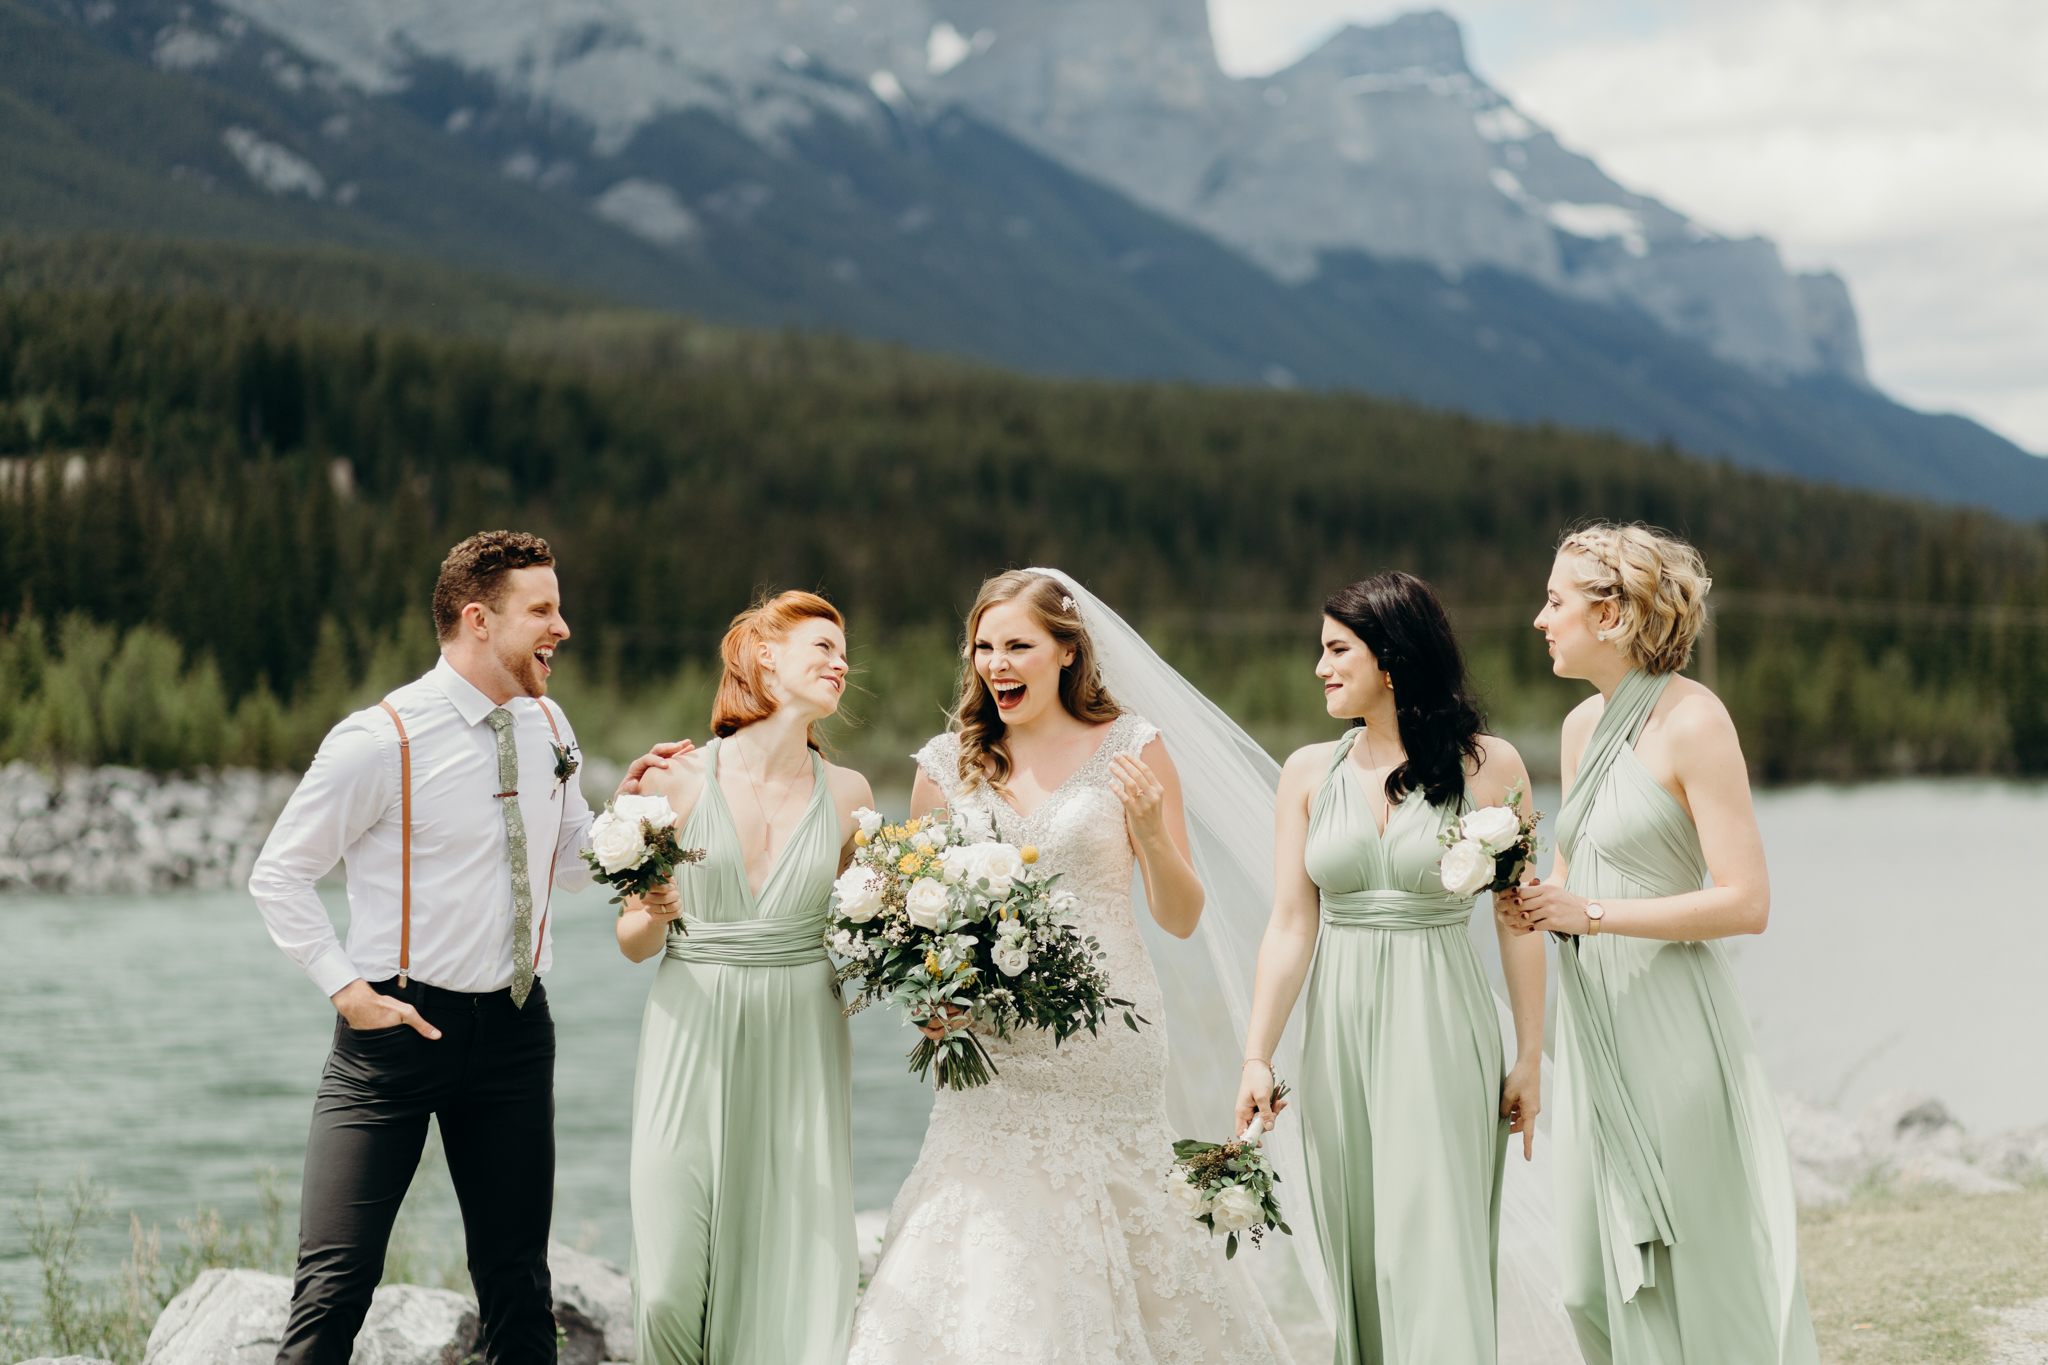 Bride and bridesmaids walk and laugh destination wedding photographer rocky mountains